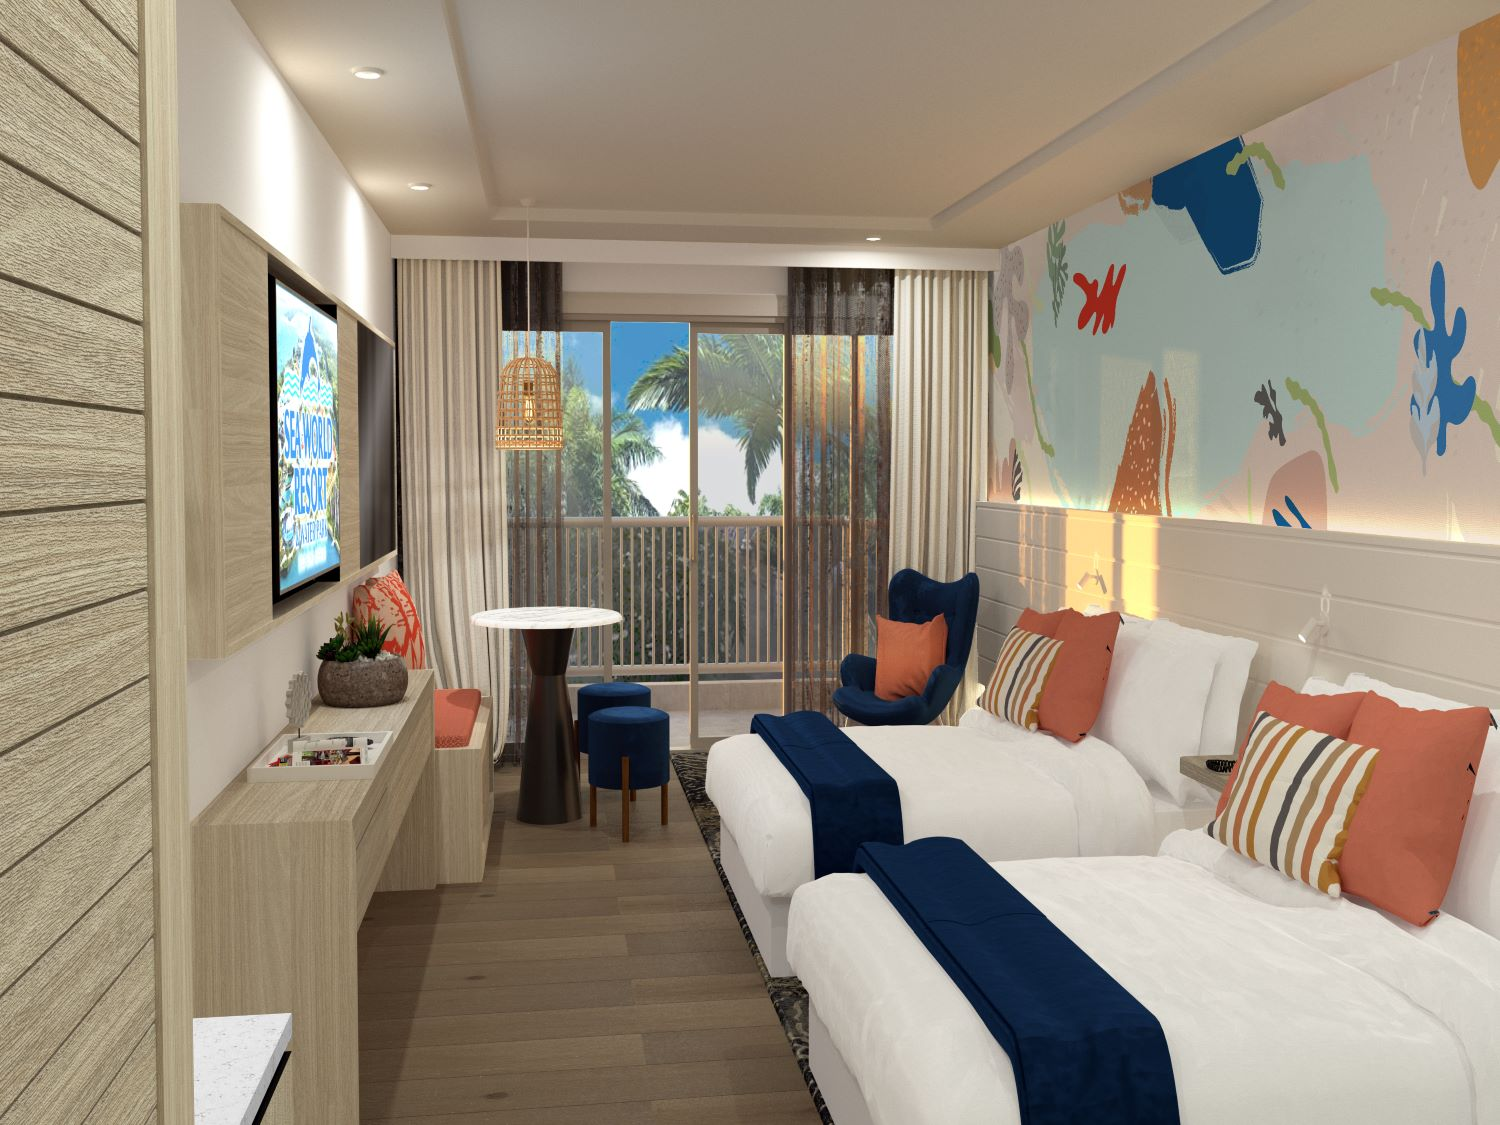 Deluxe Double Room - Theme Park Holiday Sale